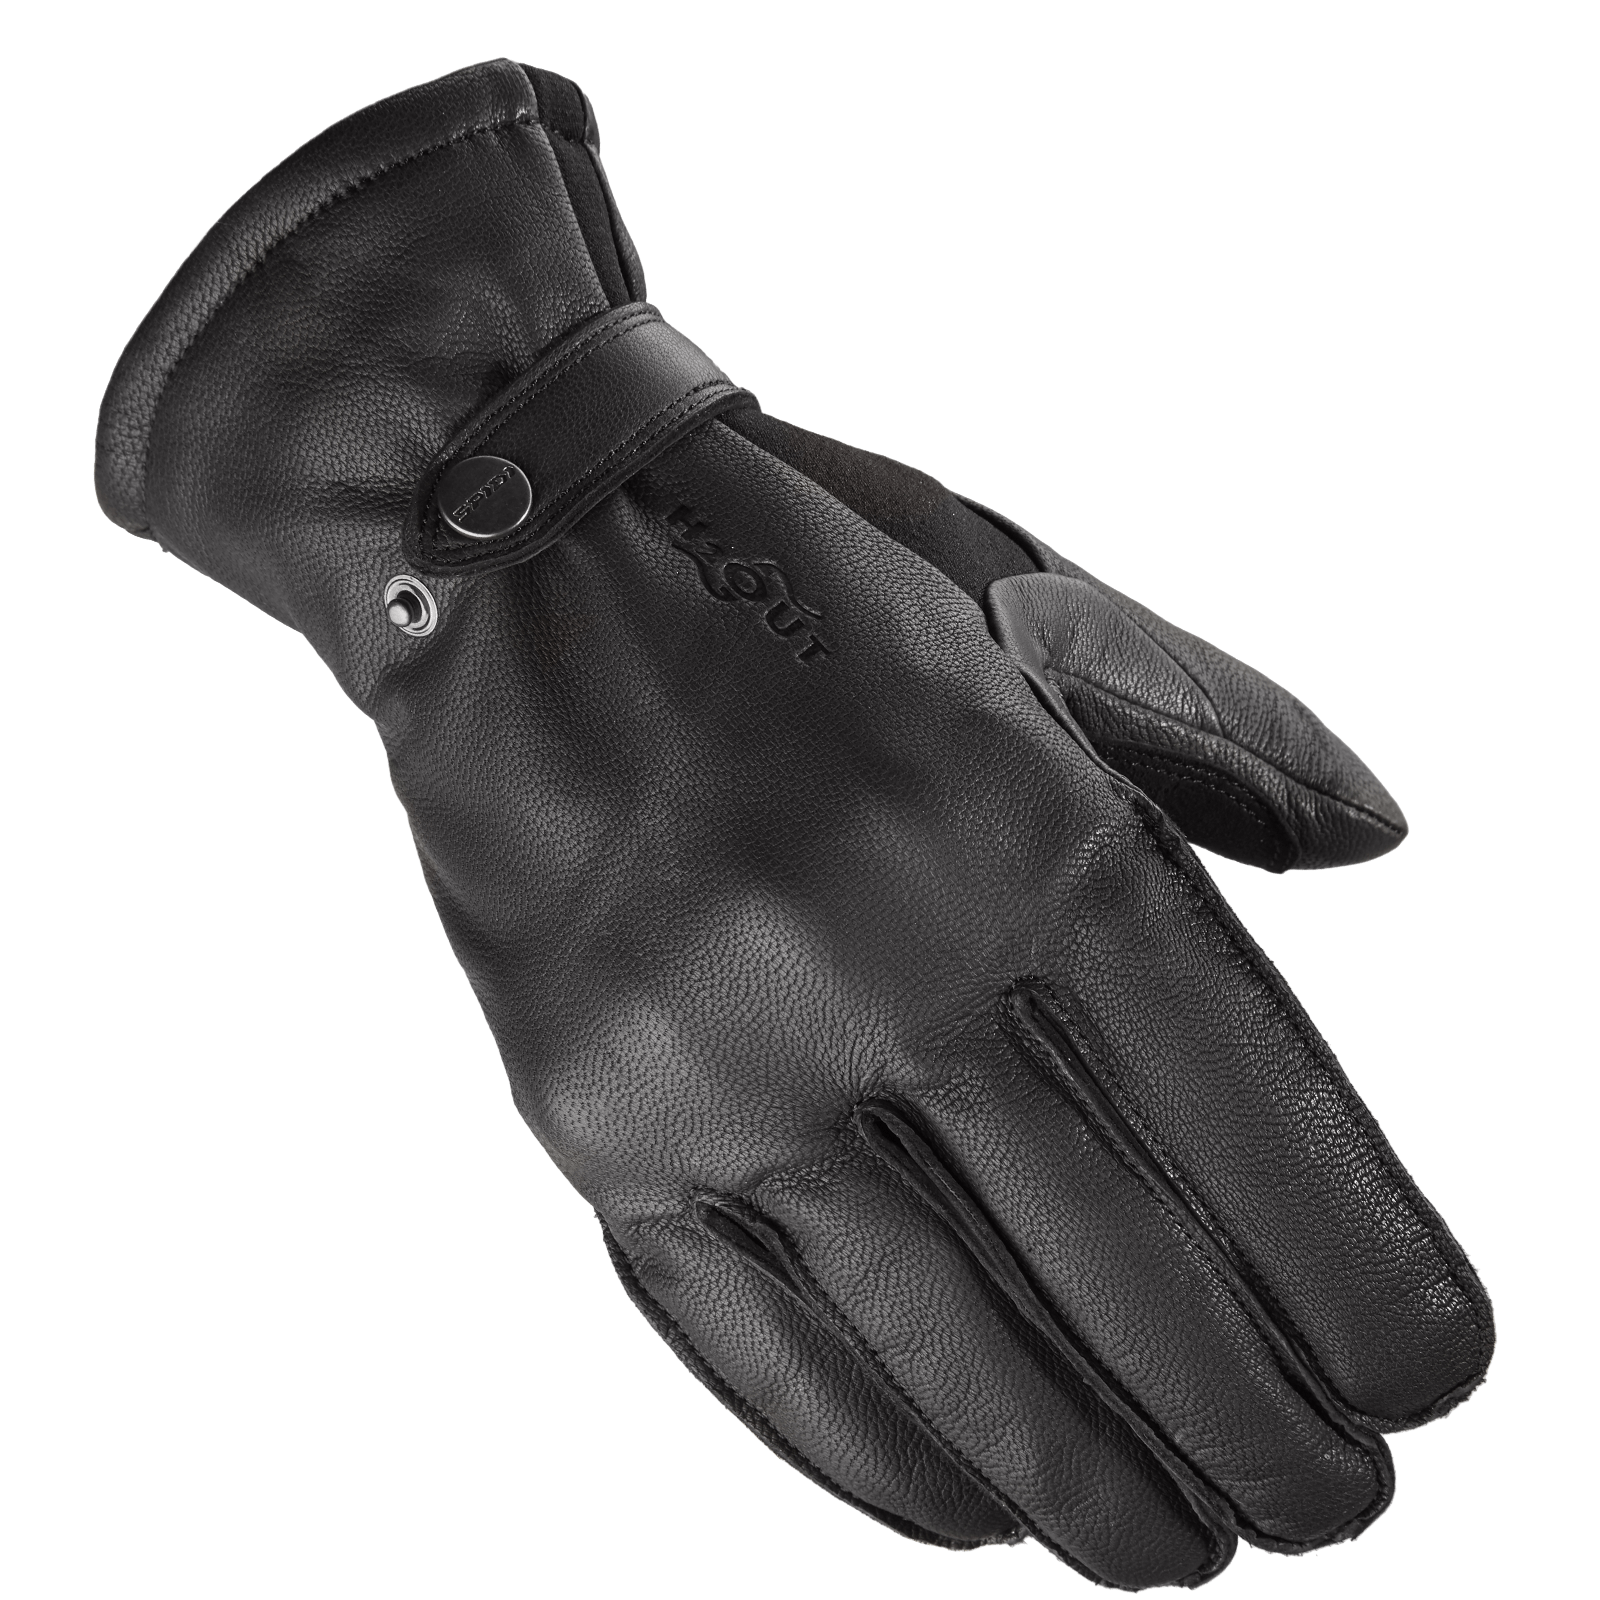 adc07302bace4 Classic leather glove